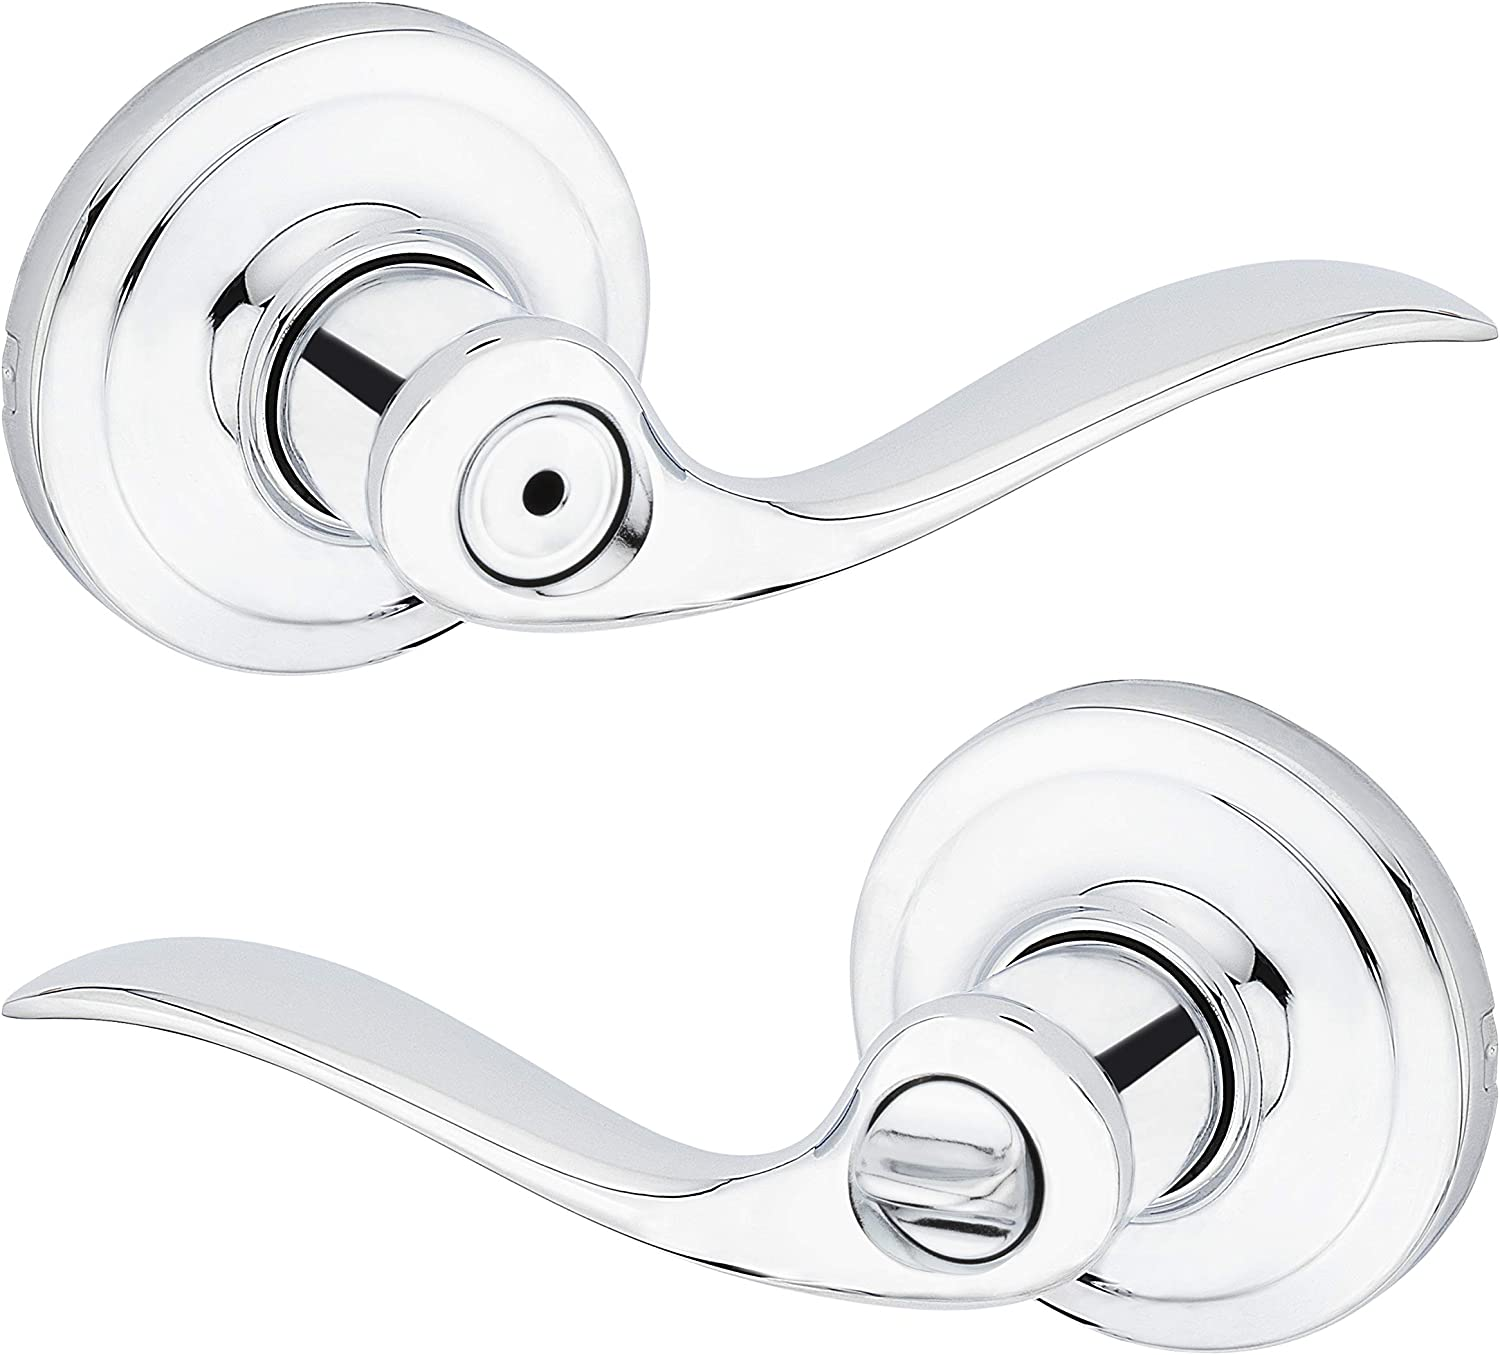 Kwikset 97300-728 Tustin Door Handle Lever with Traditional Wave Design for Home Bedroom or Bathroom Privacy in Polished Chrome